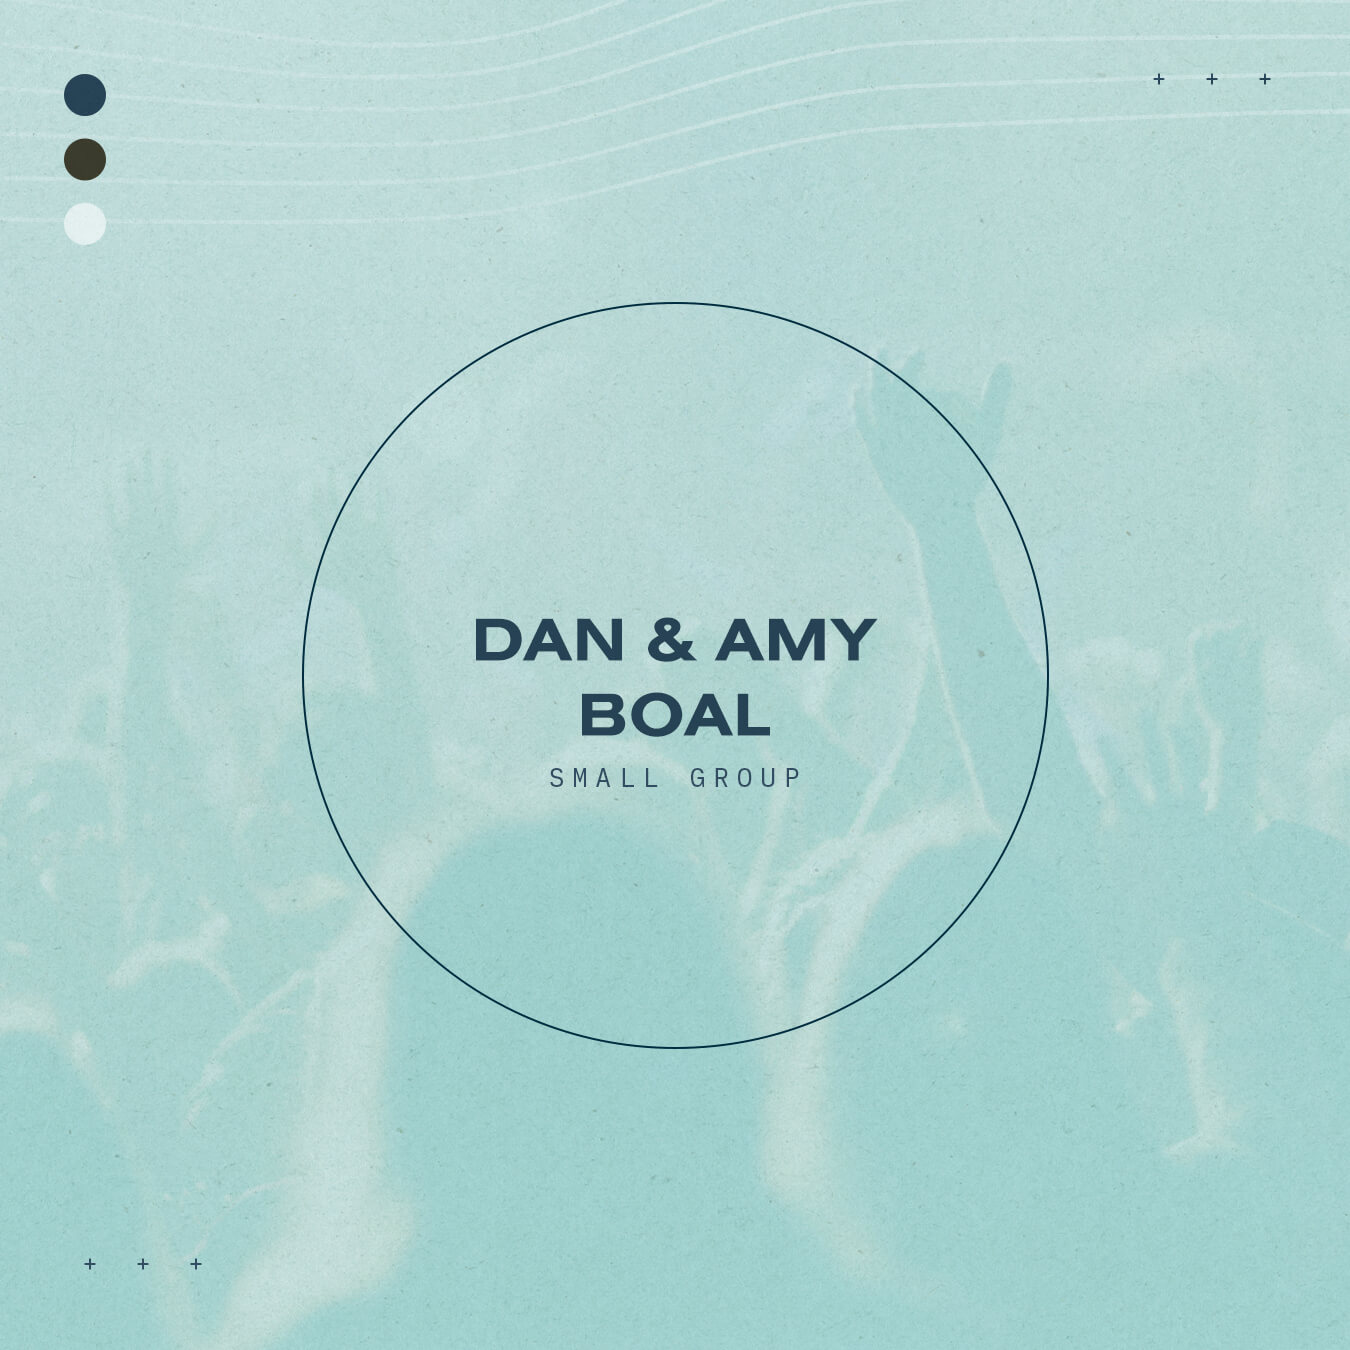 Dan and Amy Boal - A Tuesday Night Small Group